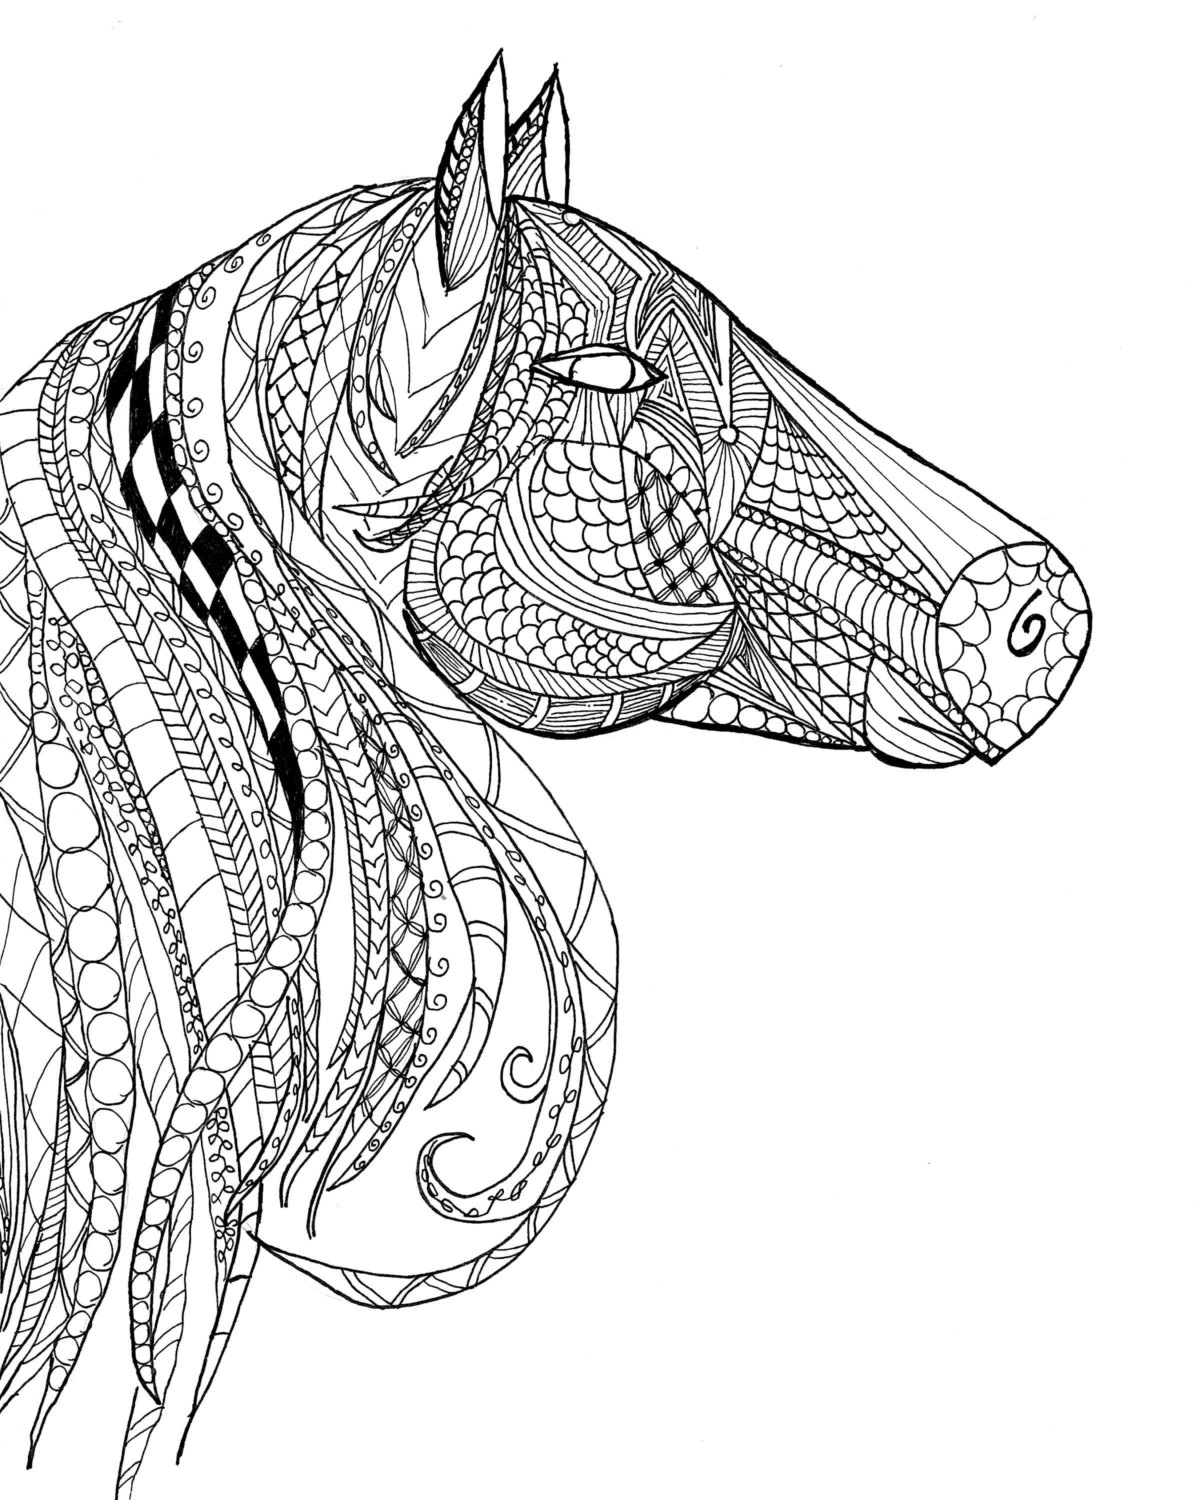 horse coloring sheets horse color sheet for kids activity shelter sheets horse coloring